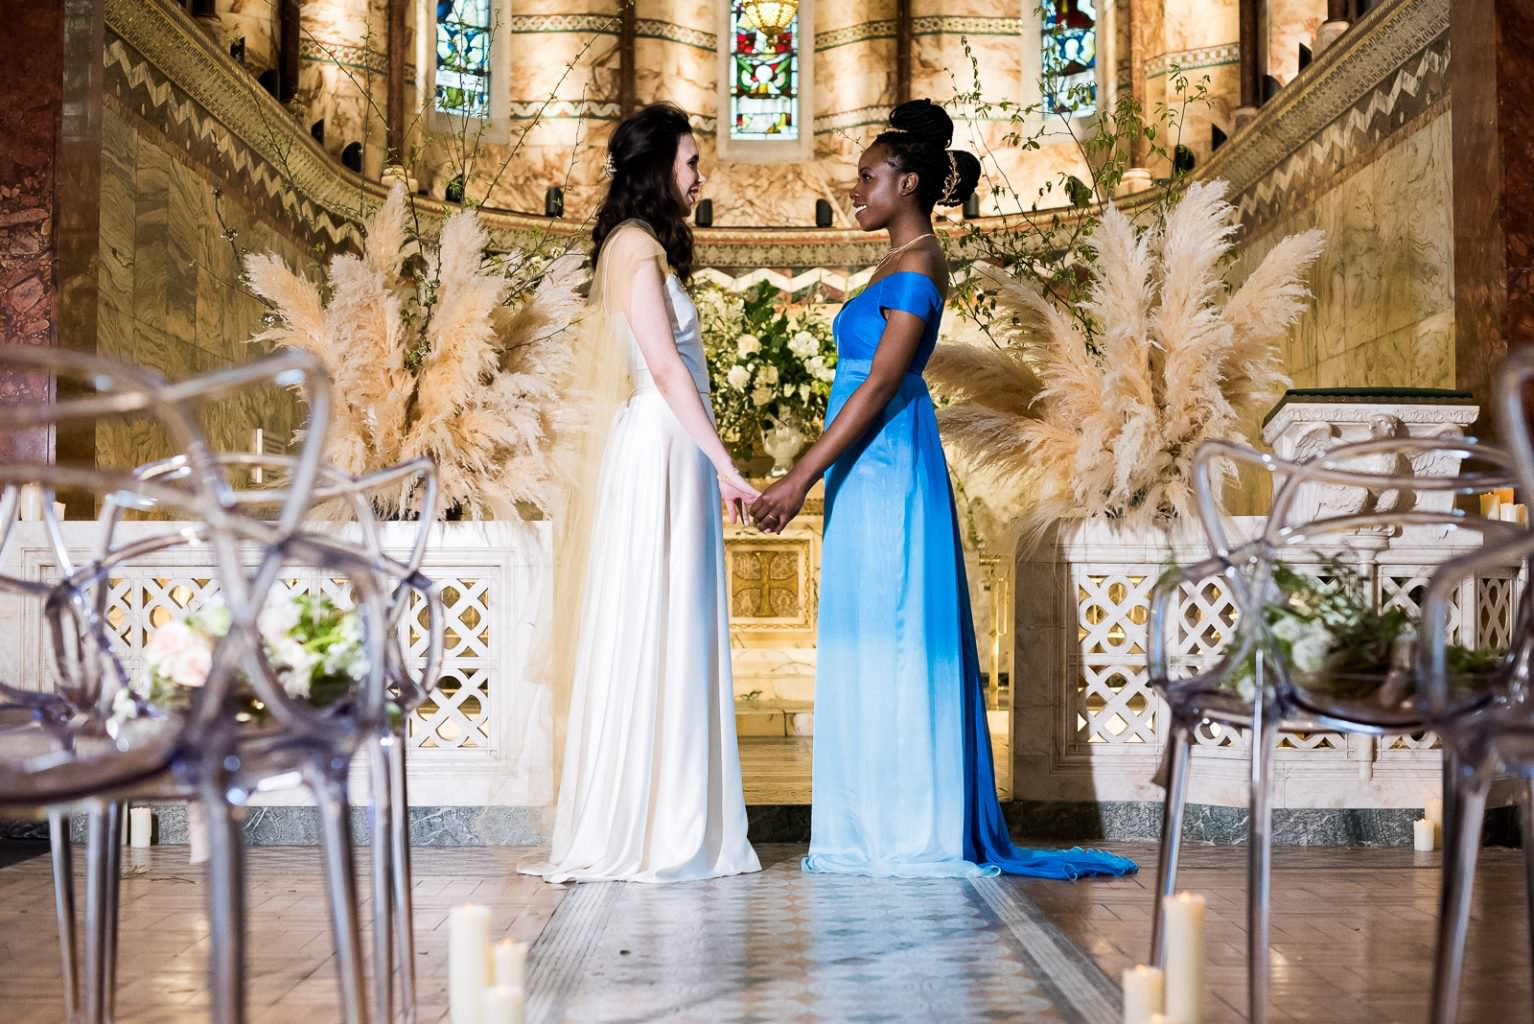 same sex brides at altar Fitzrovia Chapel wedding photoshoot but Always Andri Wedding Design